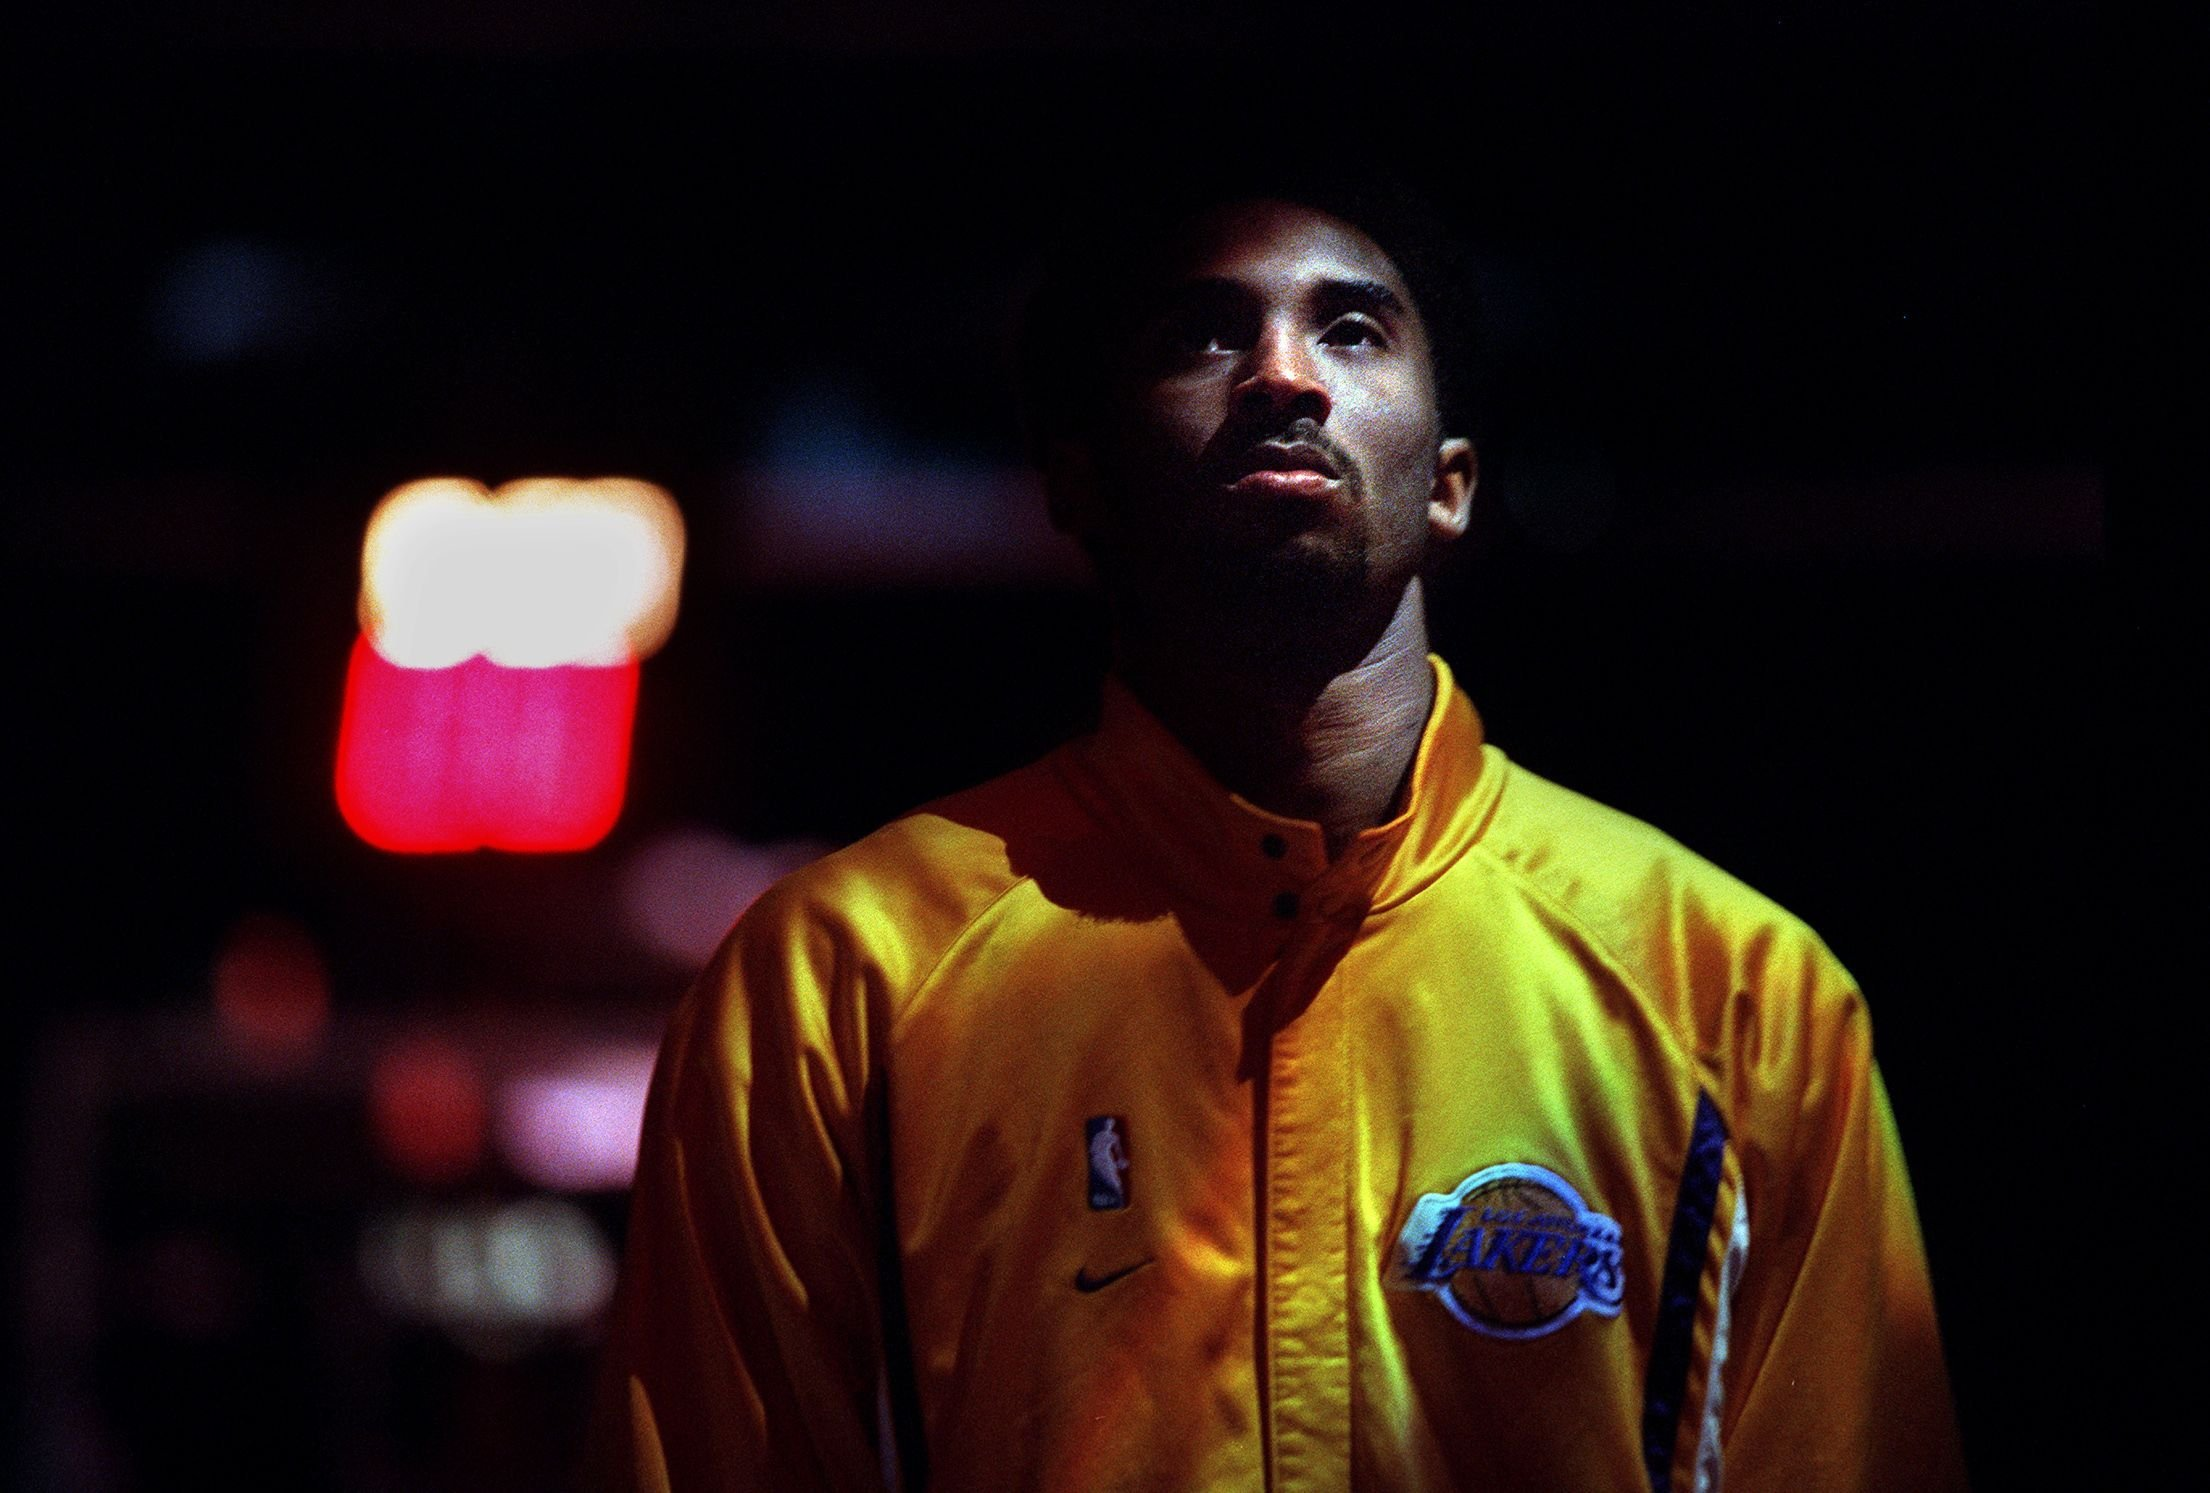 Kobe Bryant at an NBA pre-game ceremony | Source: Getty Images/GlobalImagesUkraine